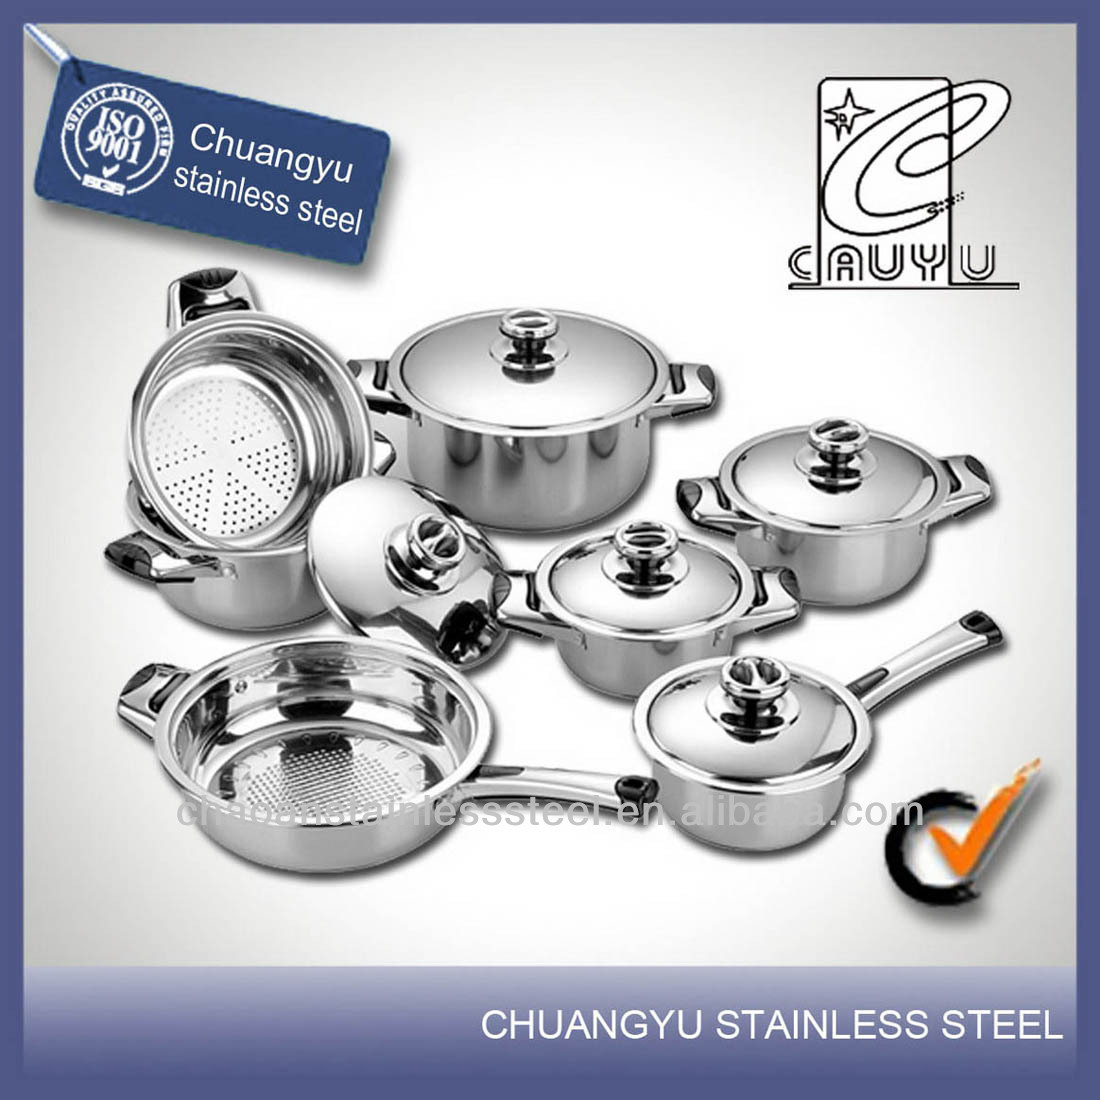 stainless steel new mayer house cookware